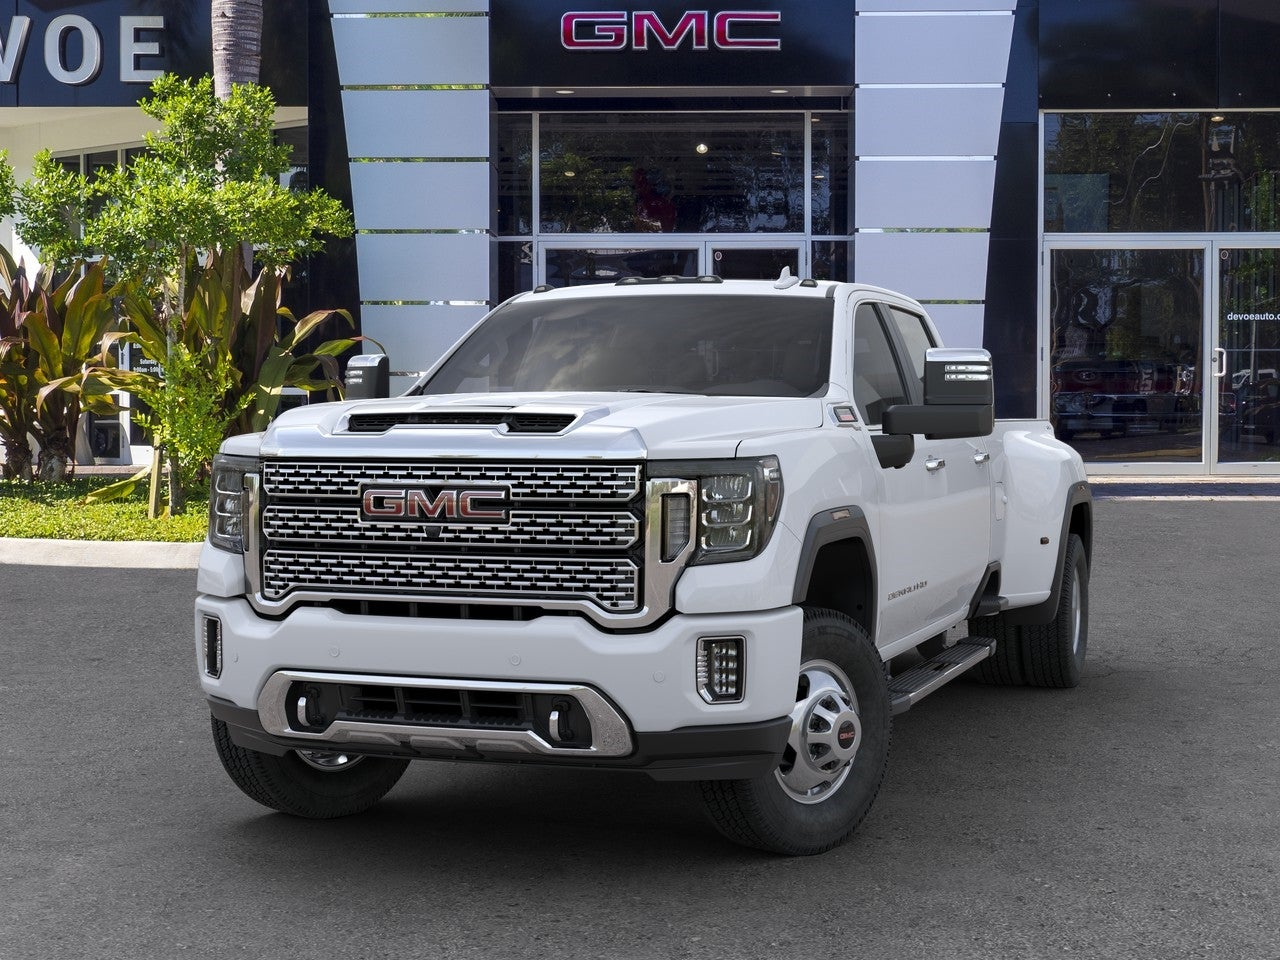 2020 GMC Sierra 3500 Crew Cab 4x4, Pickup #T20485 - photo 18